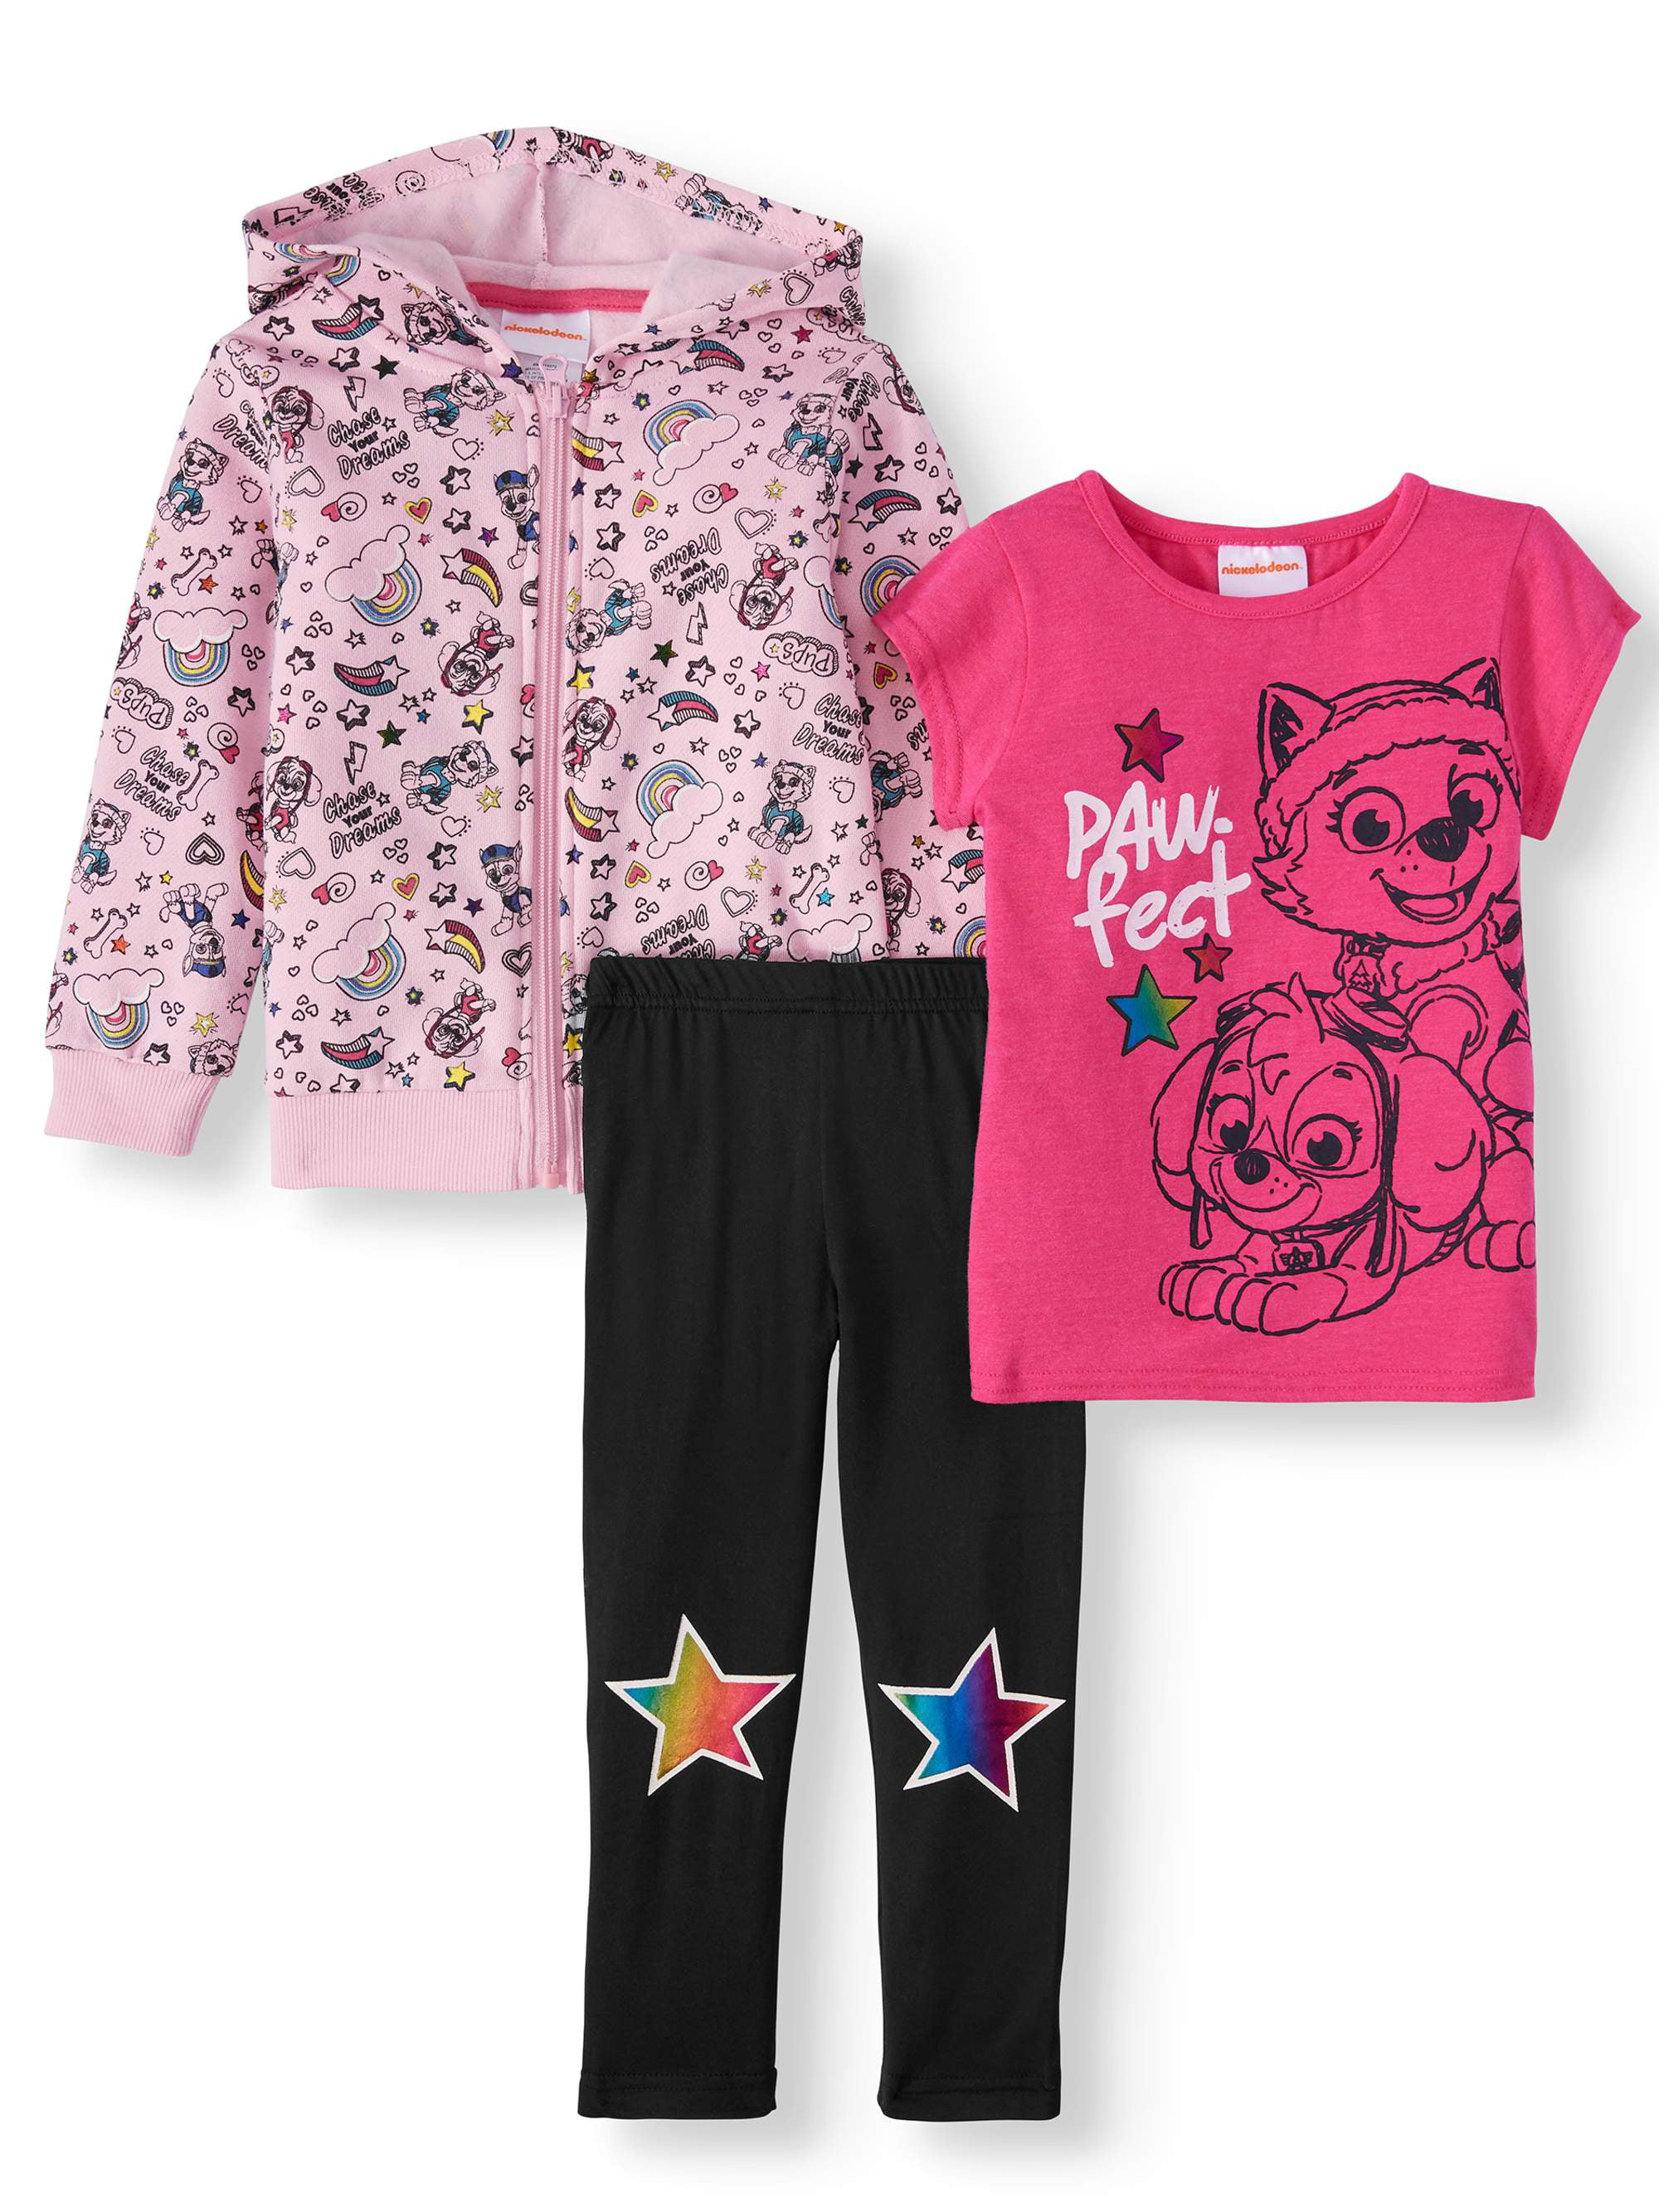 NEW Toddler Girls 2pc Outfit 4T Shirt Pants Stretch Set Workout Athletic Awesome